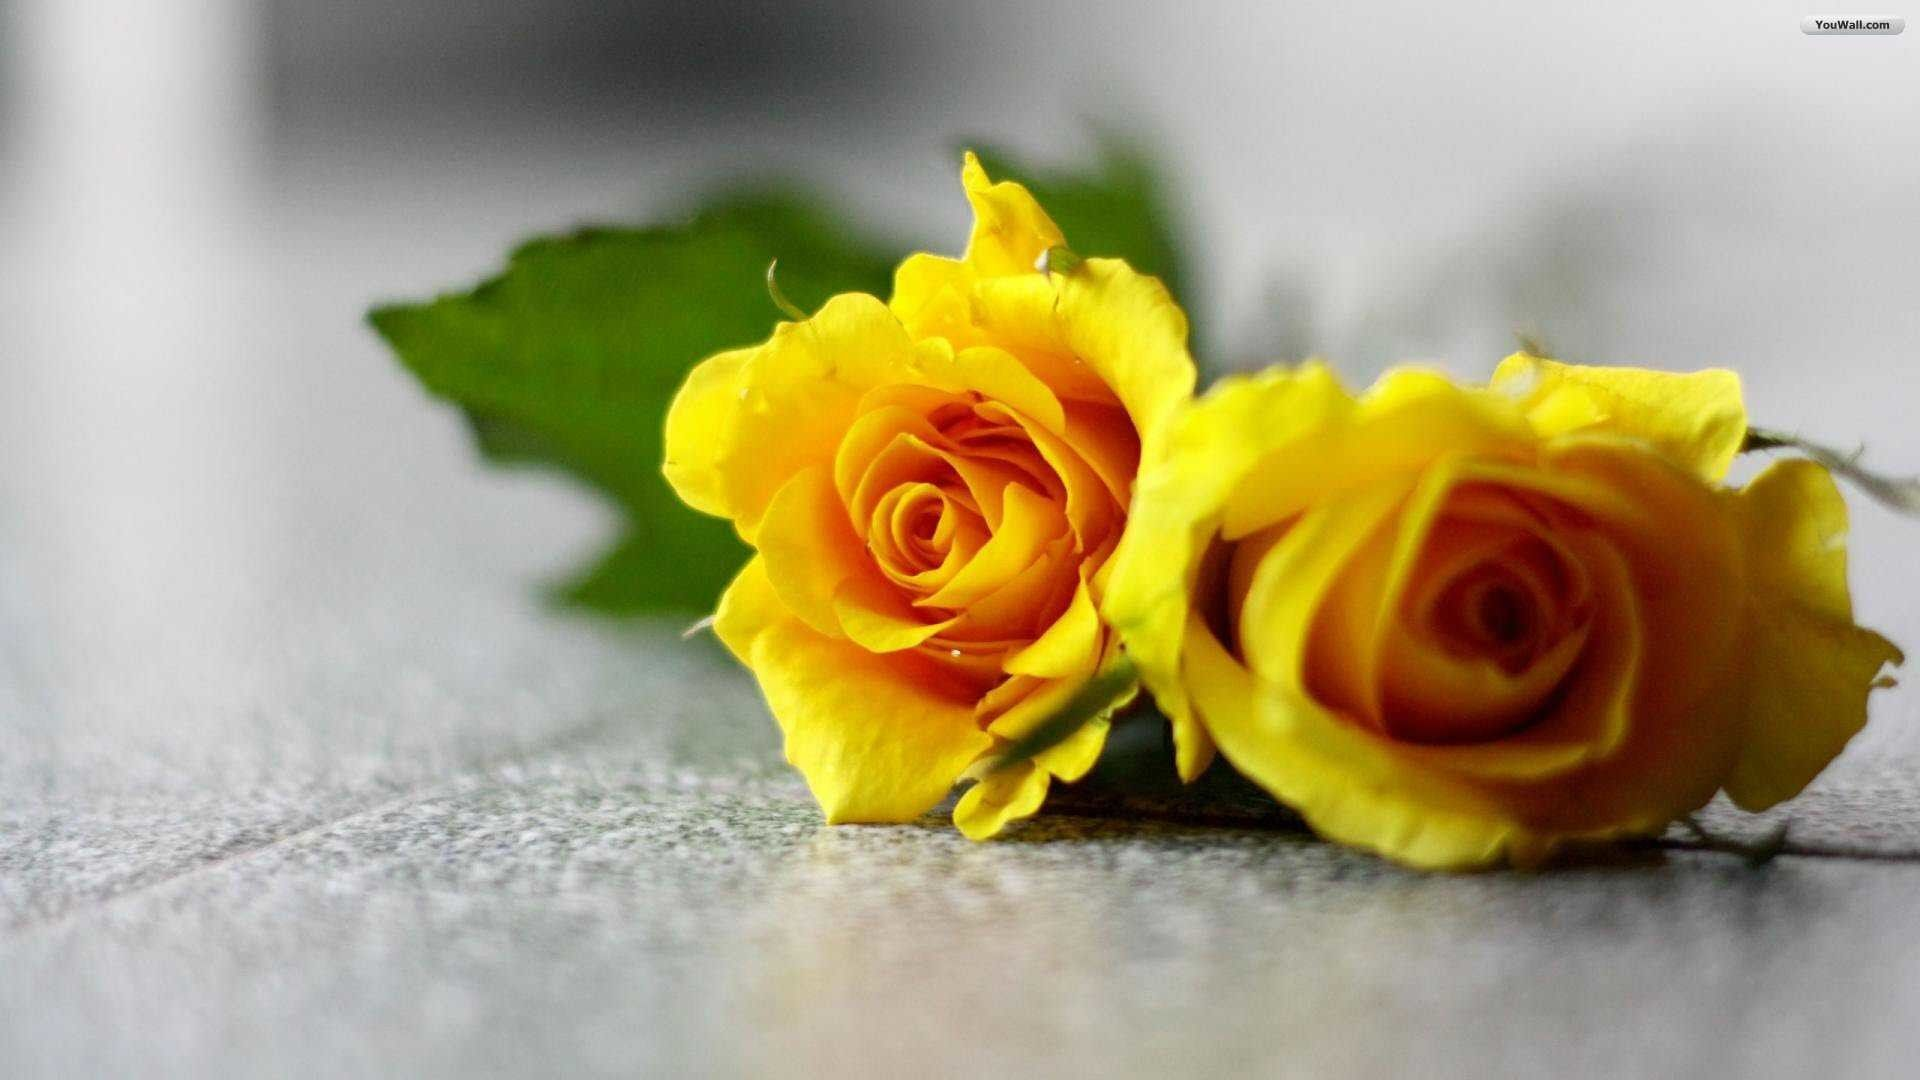 Yellow Rose Wallpapers Top Free Yellow Rose Backgrounds Wallpaperaccess